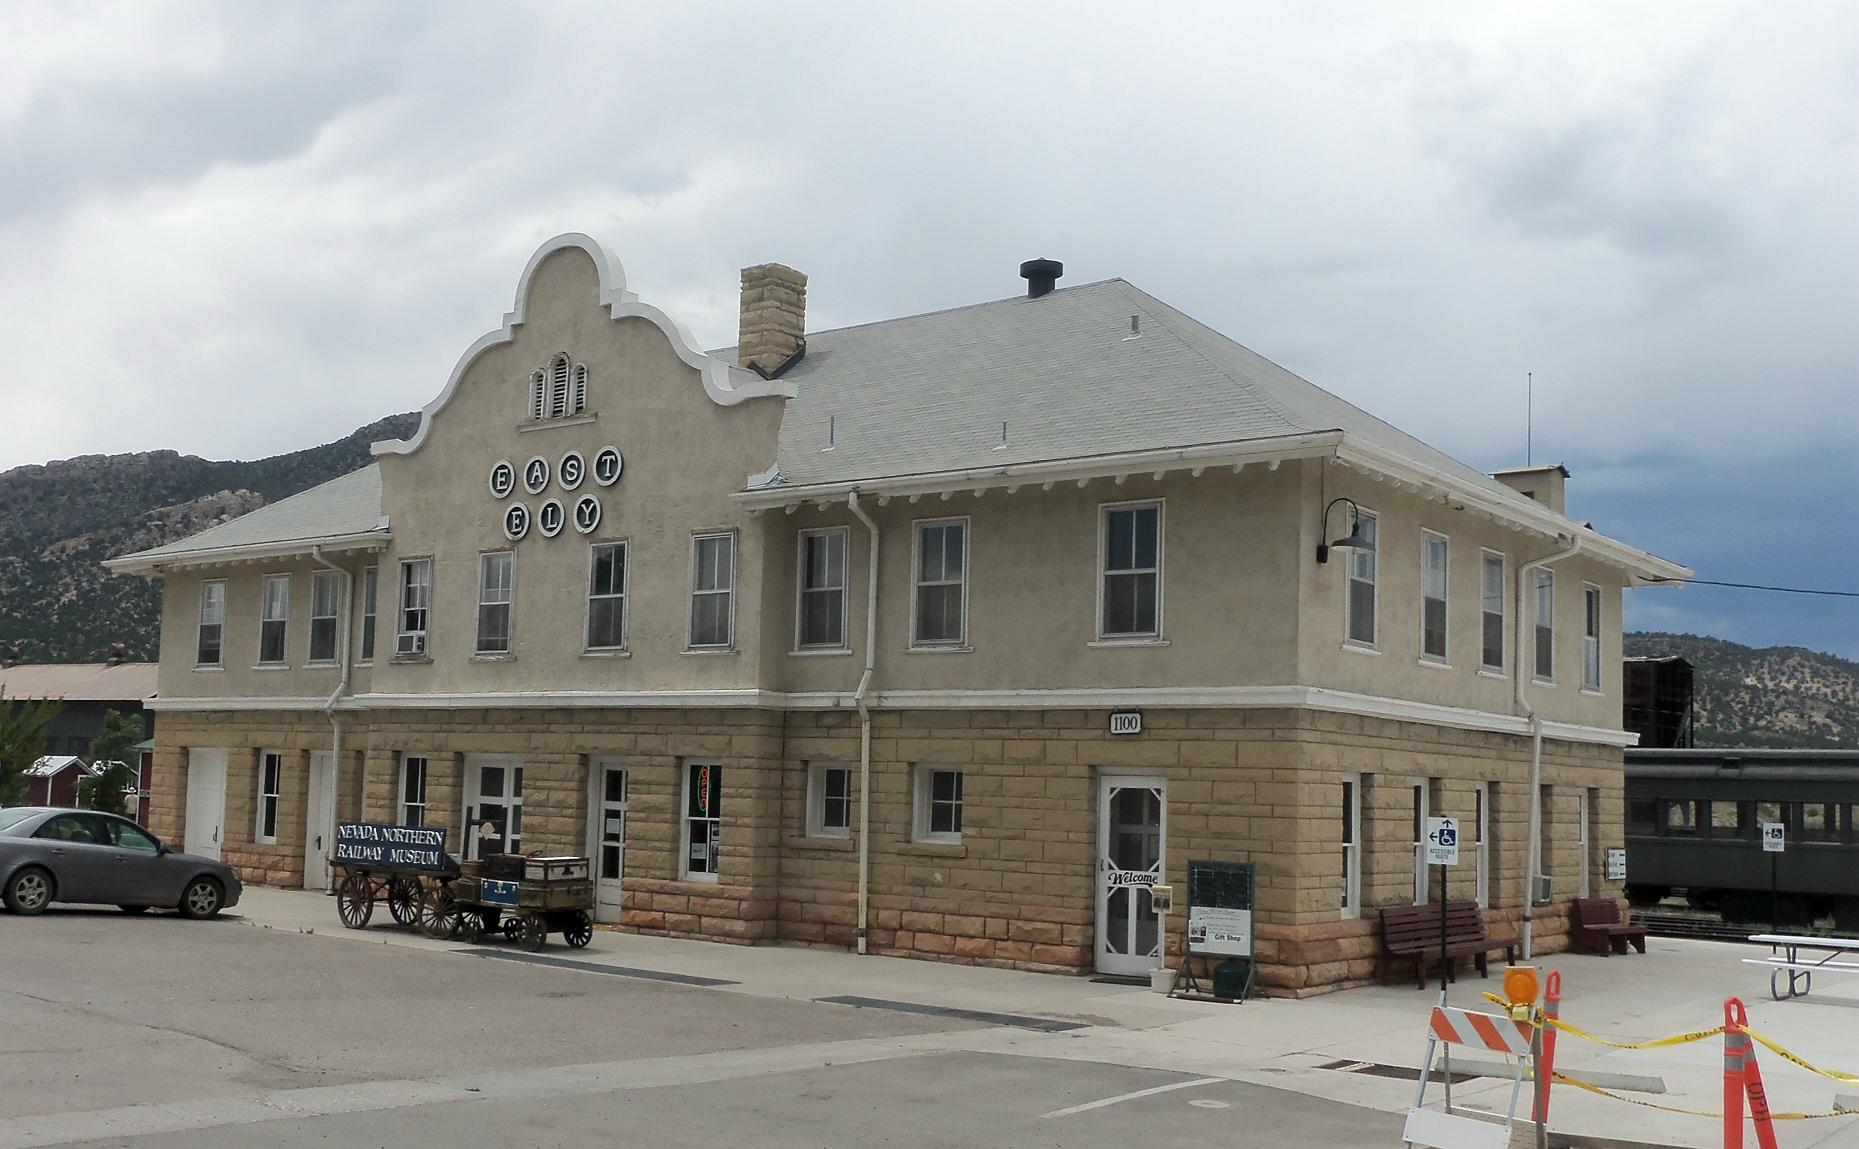 Ely: Mining, Murals, and Trains, Oh My